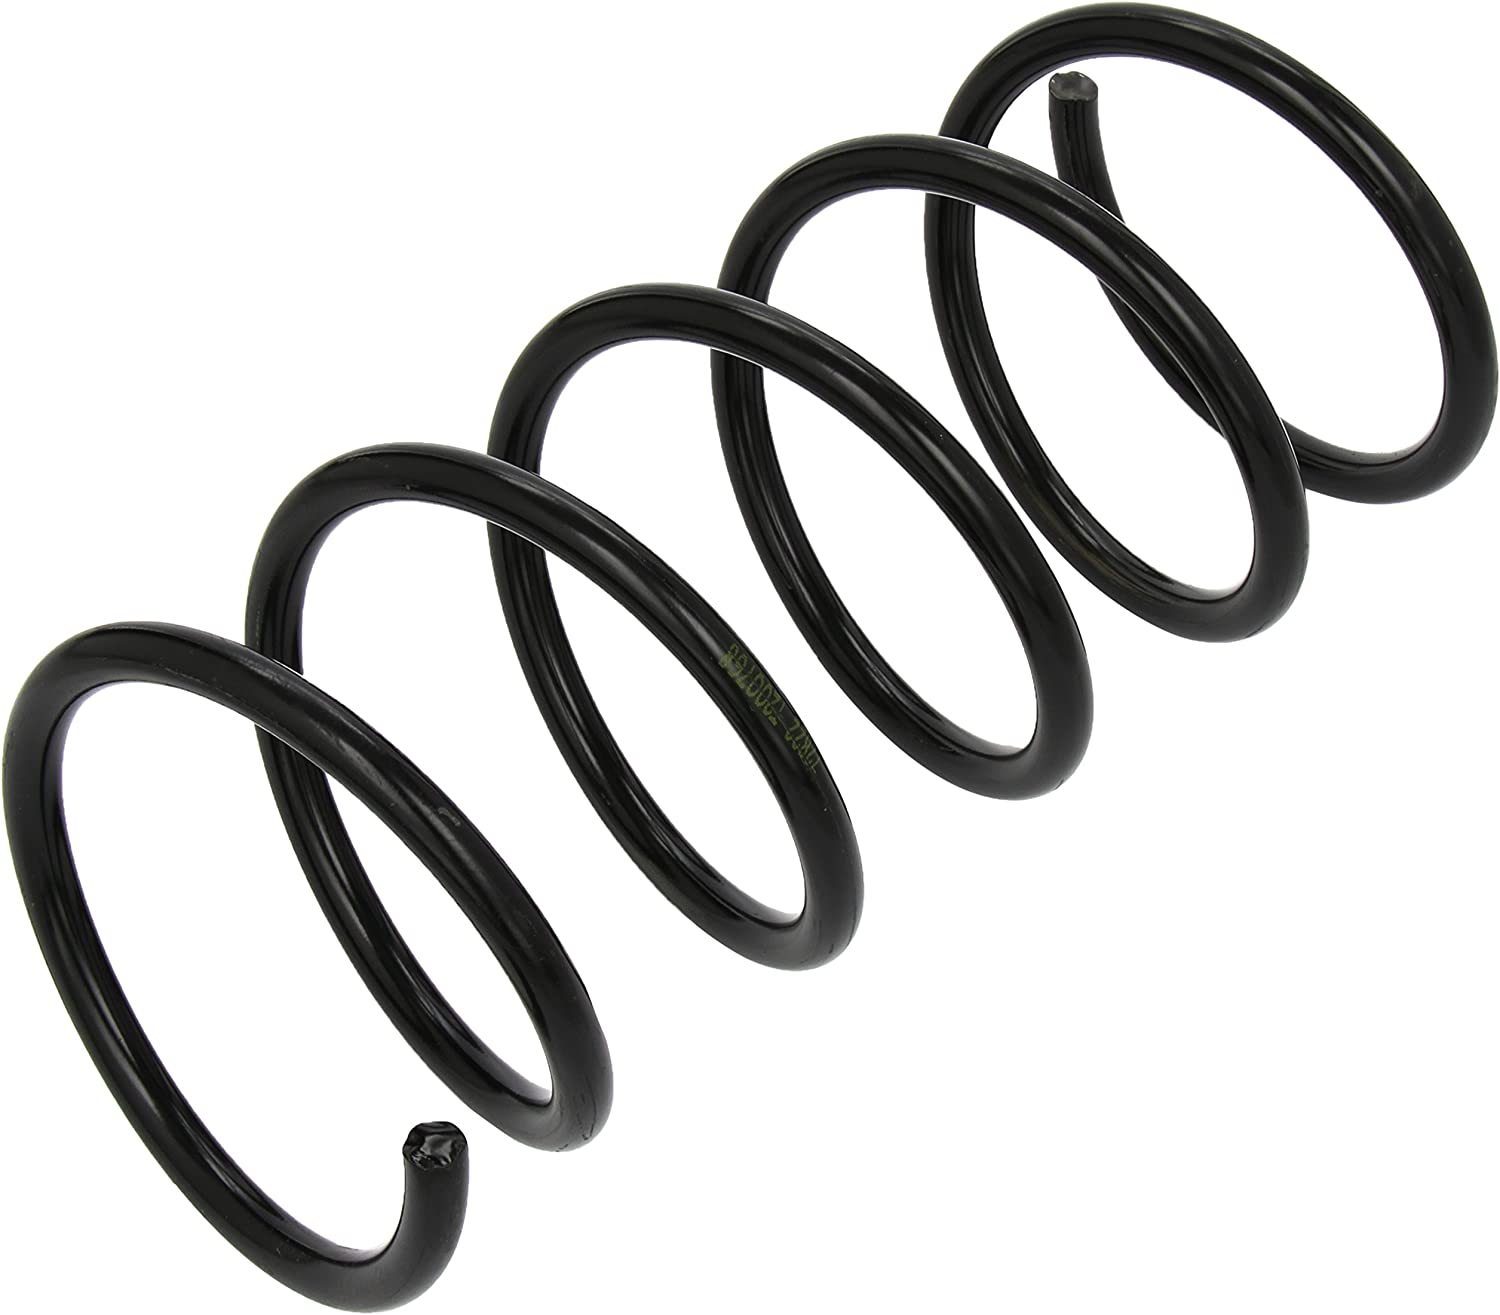 D/&D PowerDrive 146041420 Beck or ARNLEY WORLDPARTS Replacement Belt Rubber